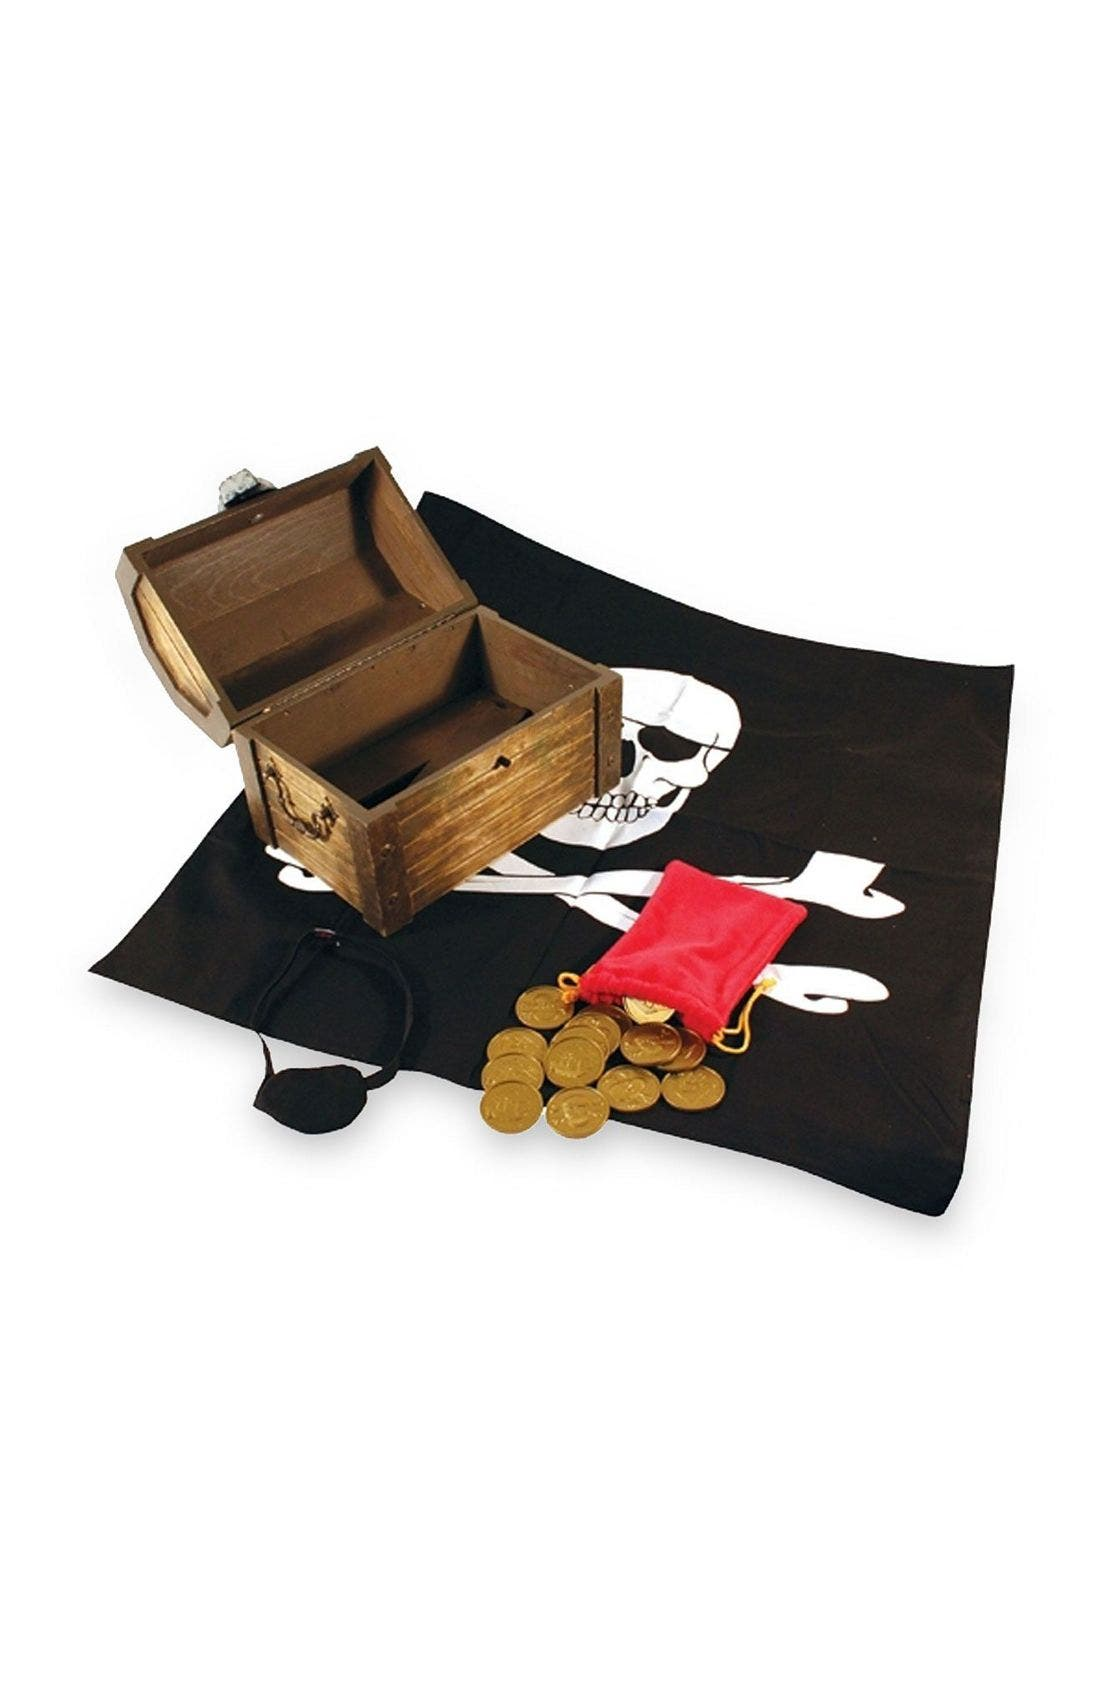 Main Image - Melissa & Doug Wooden Pirate Chest